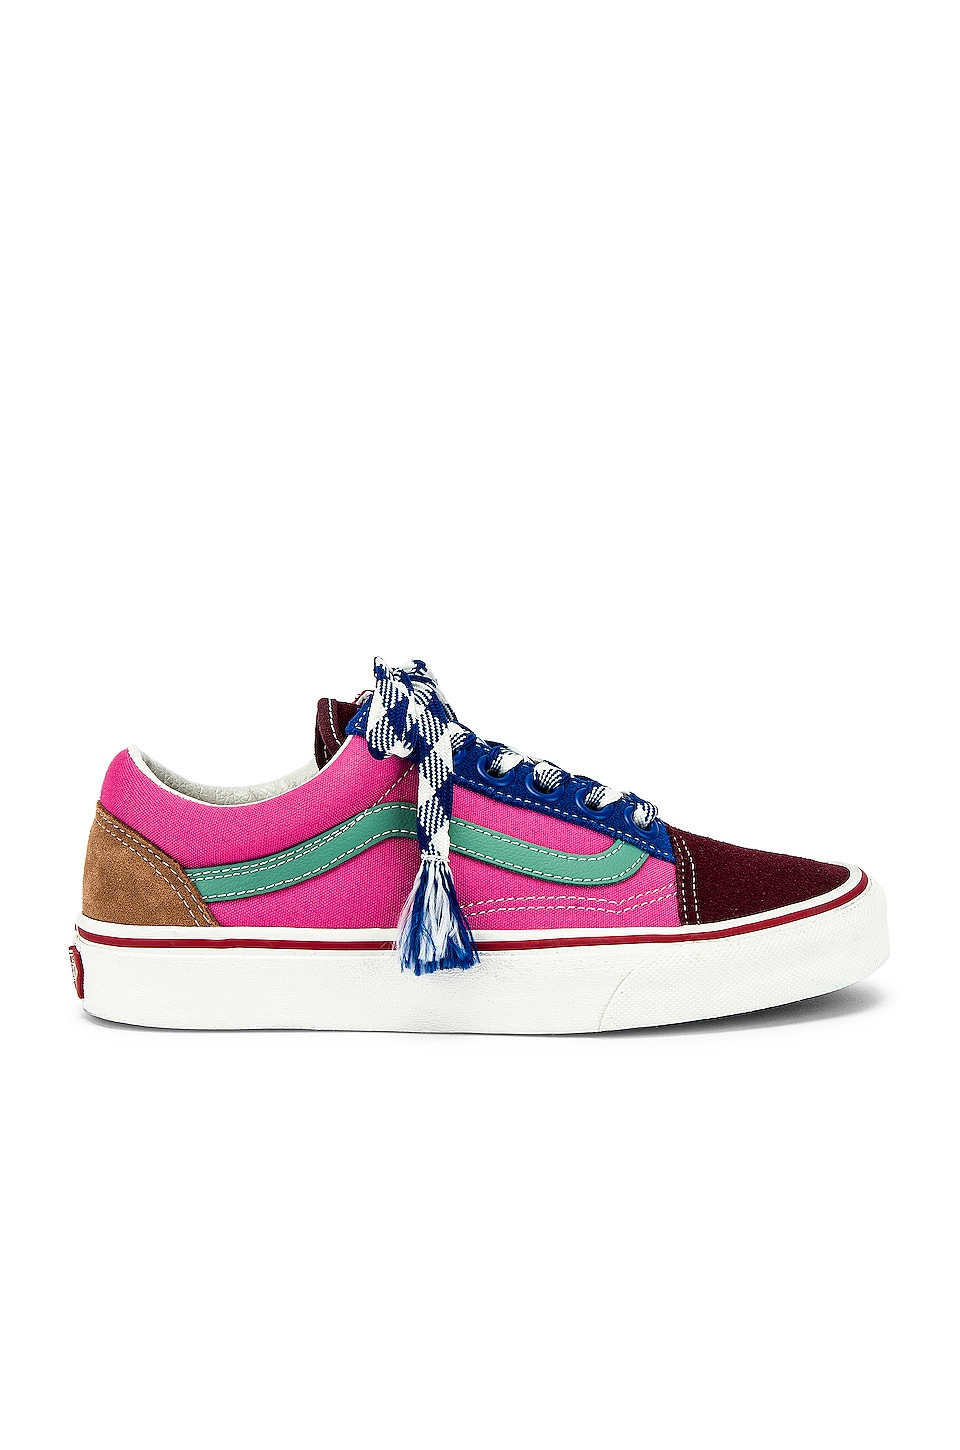 Vans Old Skool in Port Royale & Marshmallow